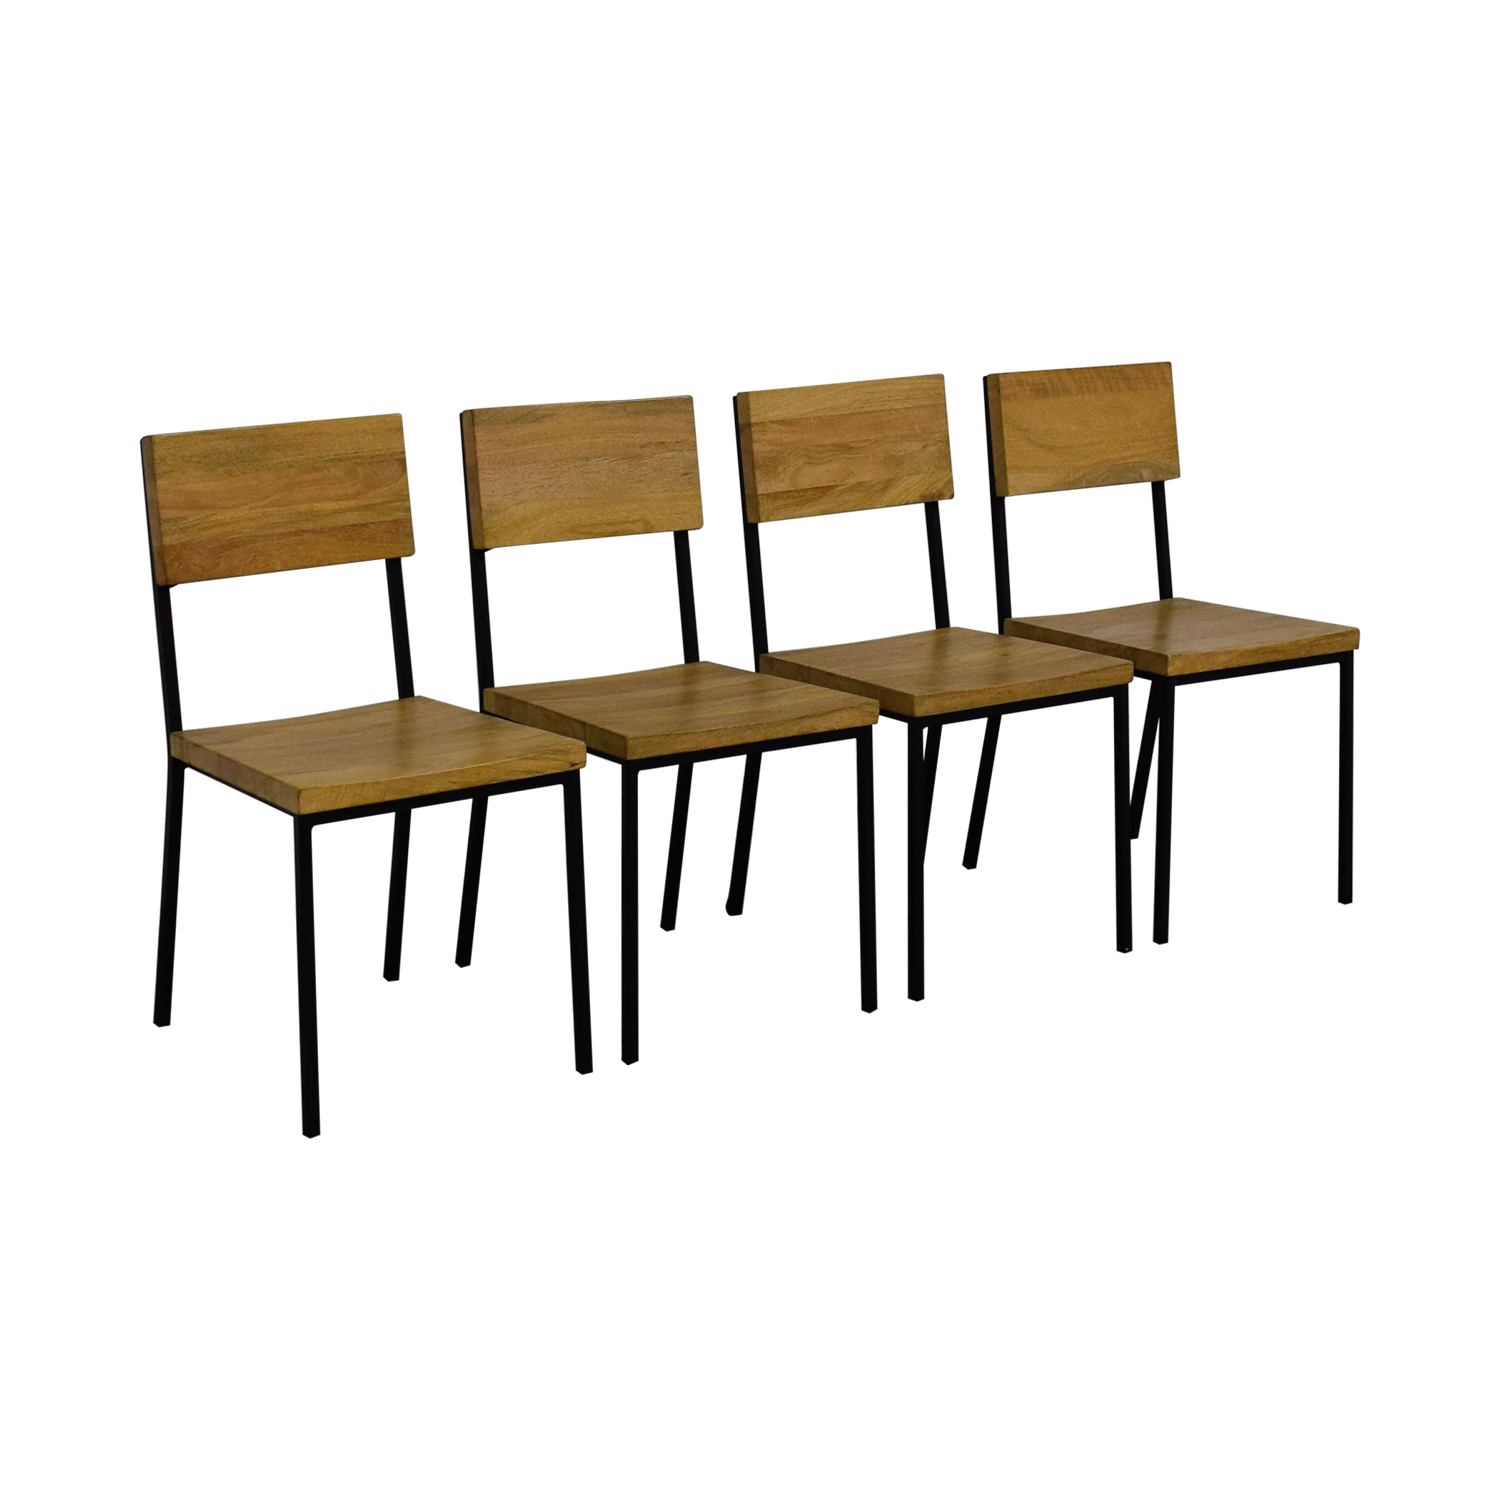 west elm chairs dining uchida japanese folding z chair 59 off rustic